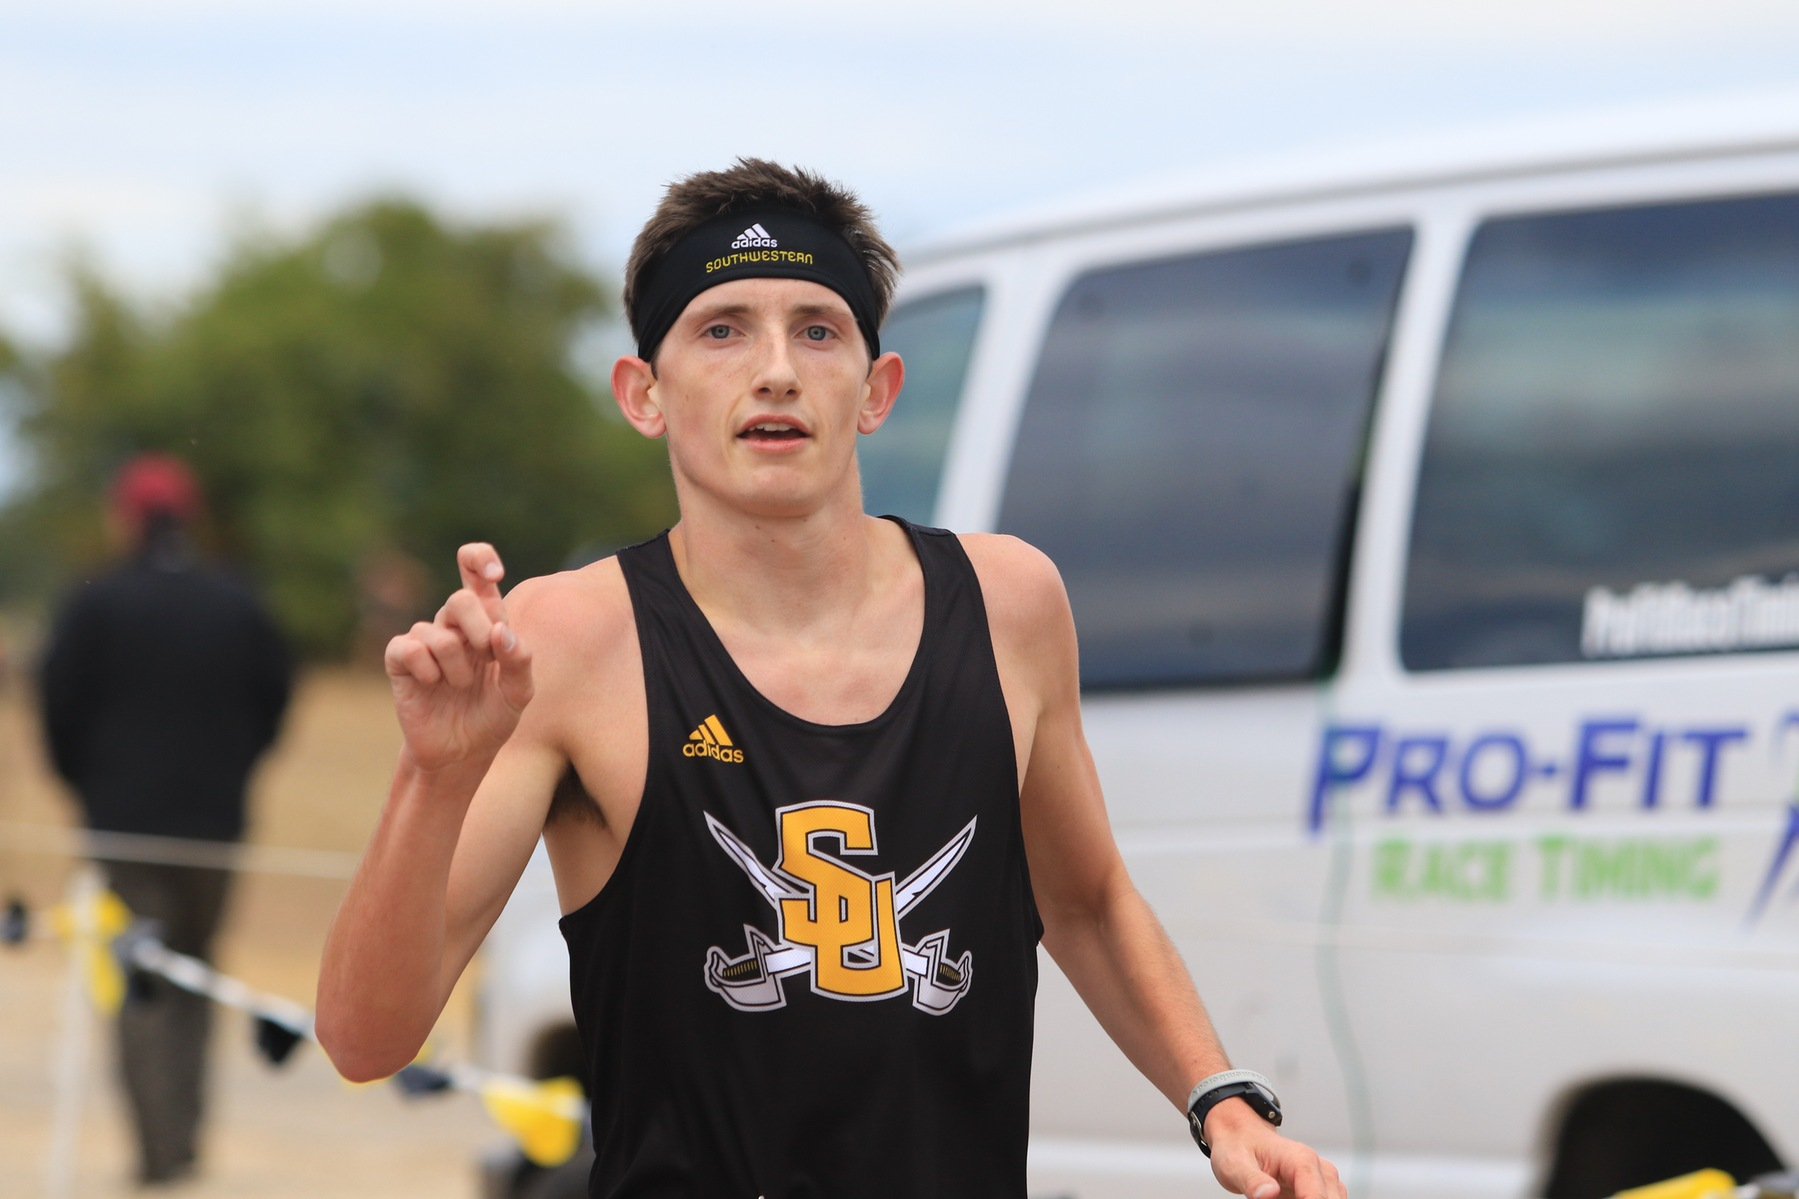 Dennis Takes First in Pirates Invitational